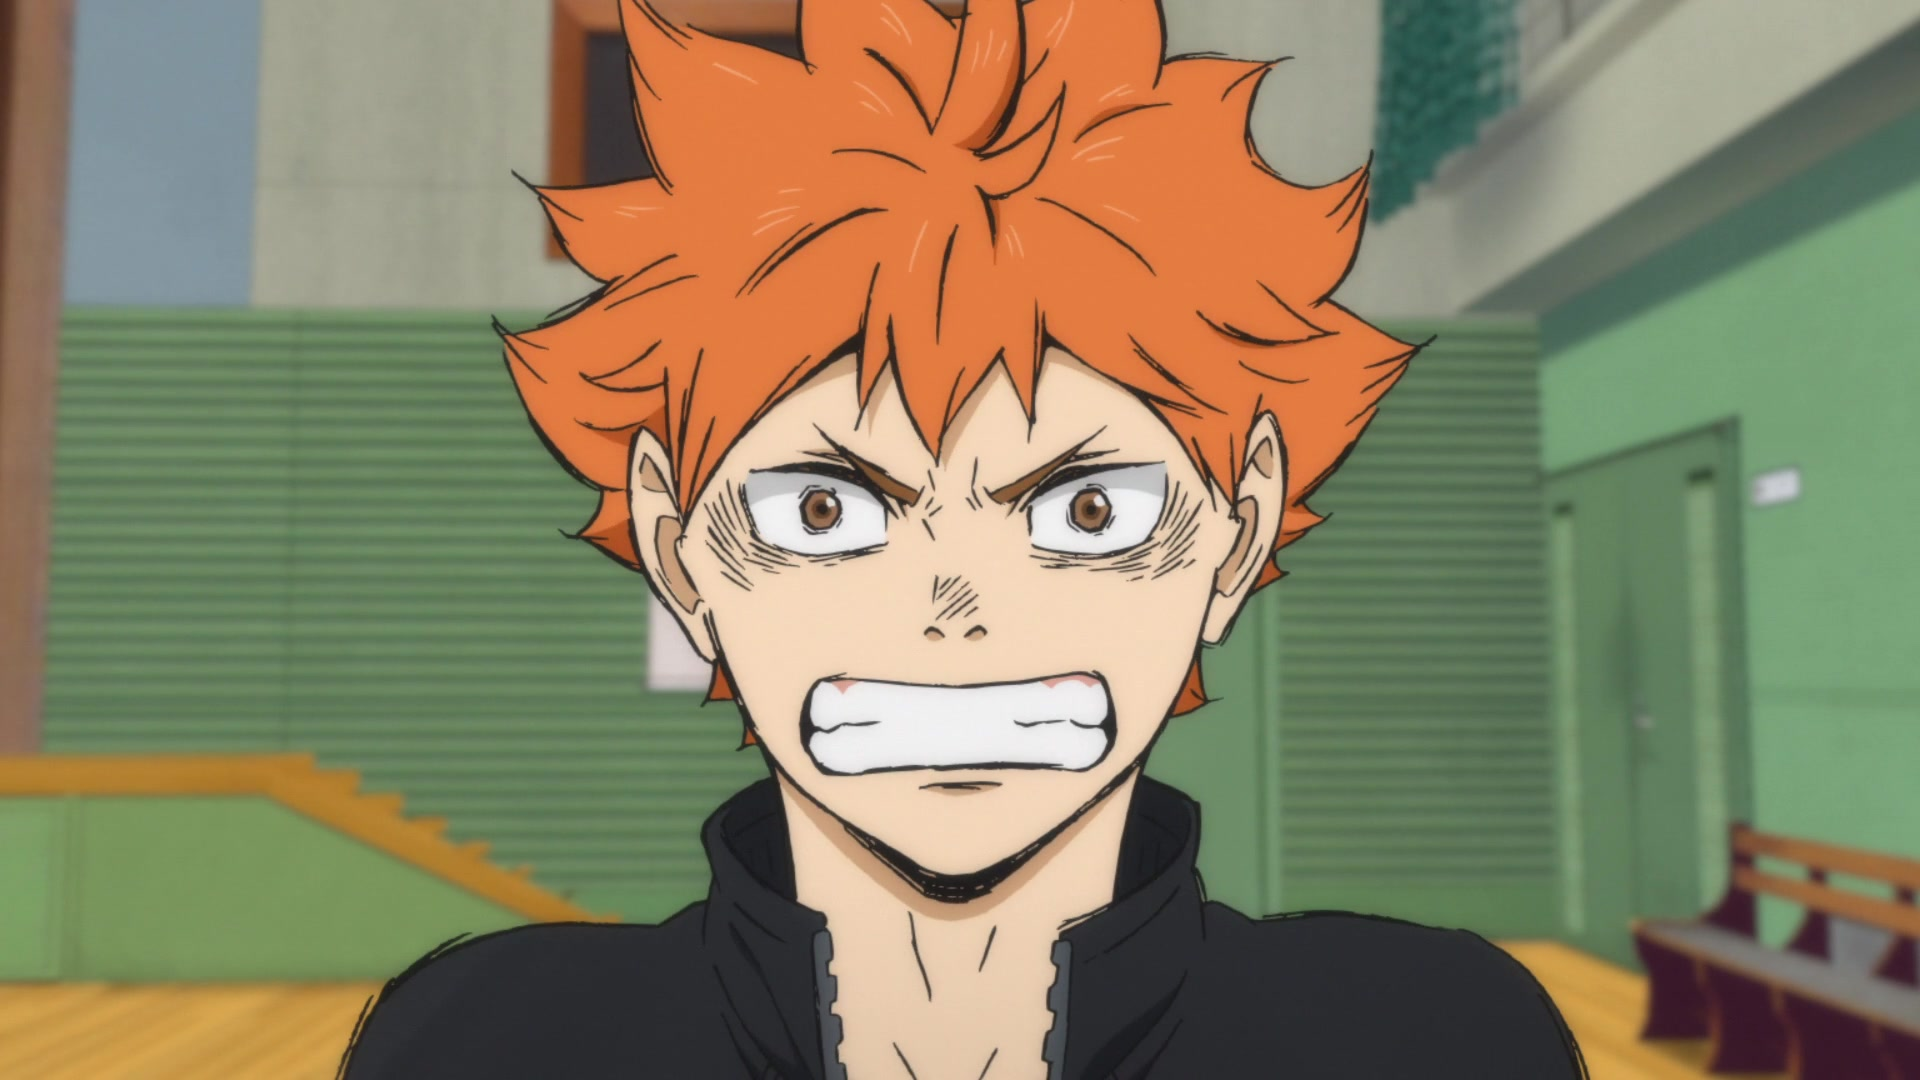 Hinata from Haikyuu!! Season 4 anime episode 1